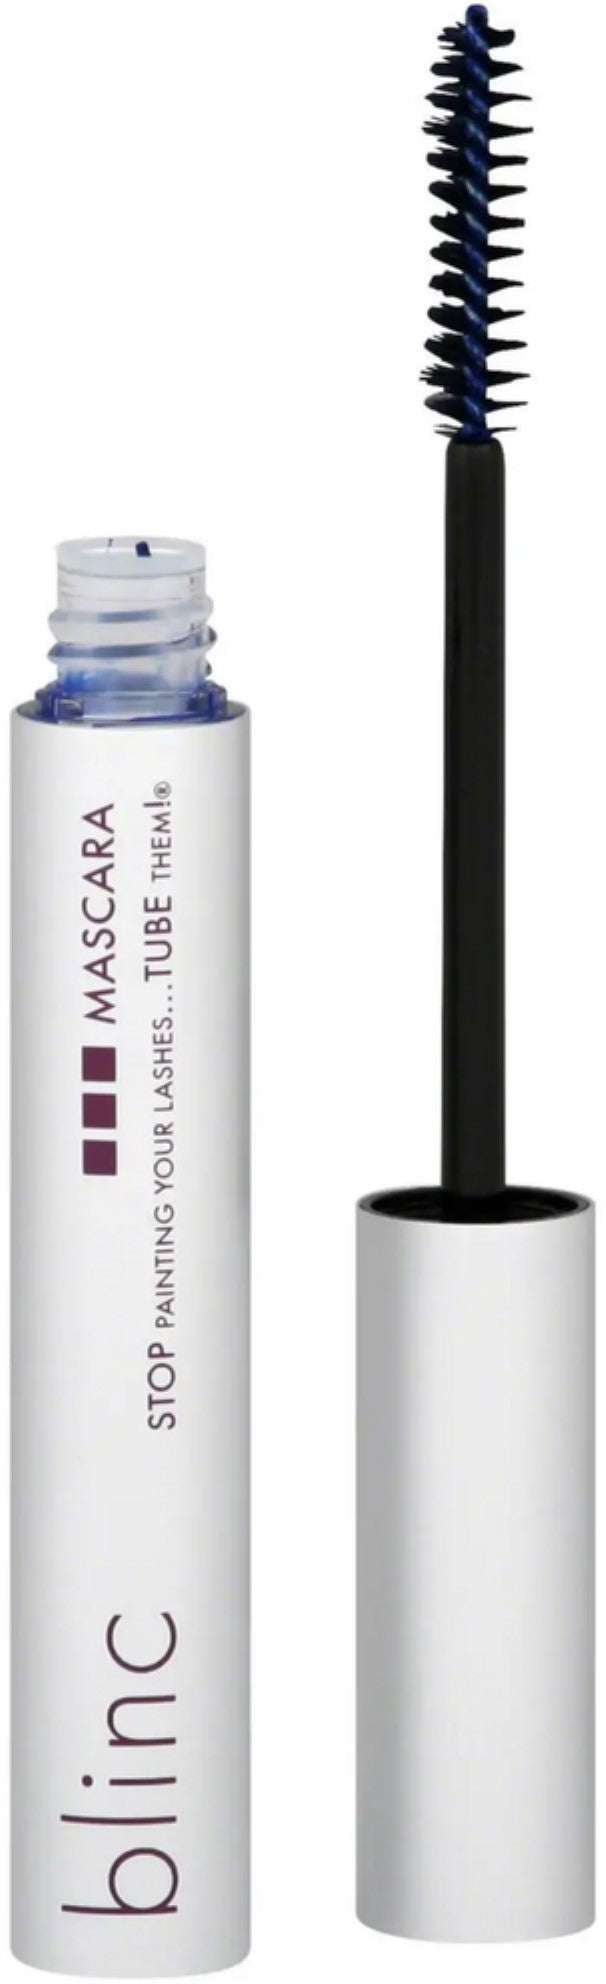 Blinc Tubular Mascara